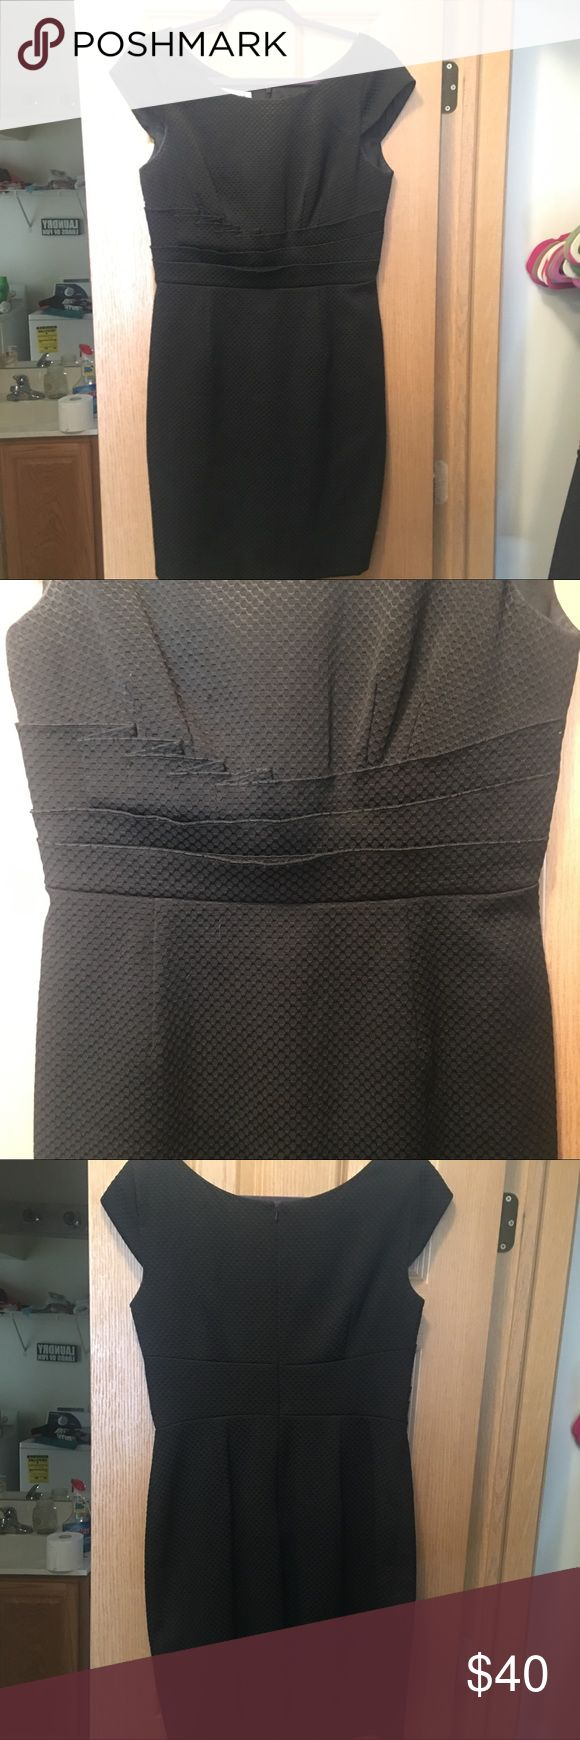 Kay Unger Dress Size 10 black Kay Unger Dress. Only worn twice! Kay Unger Dresses